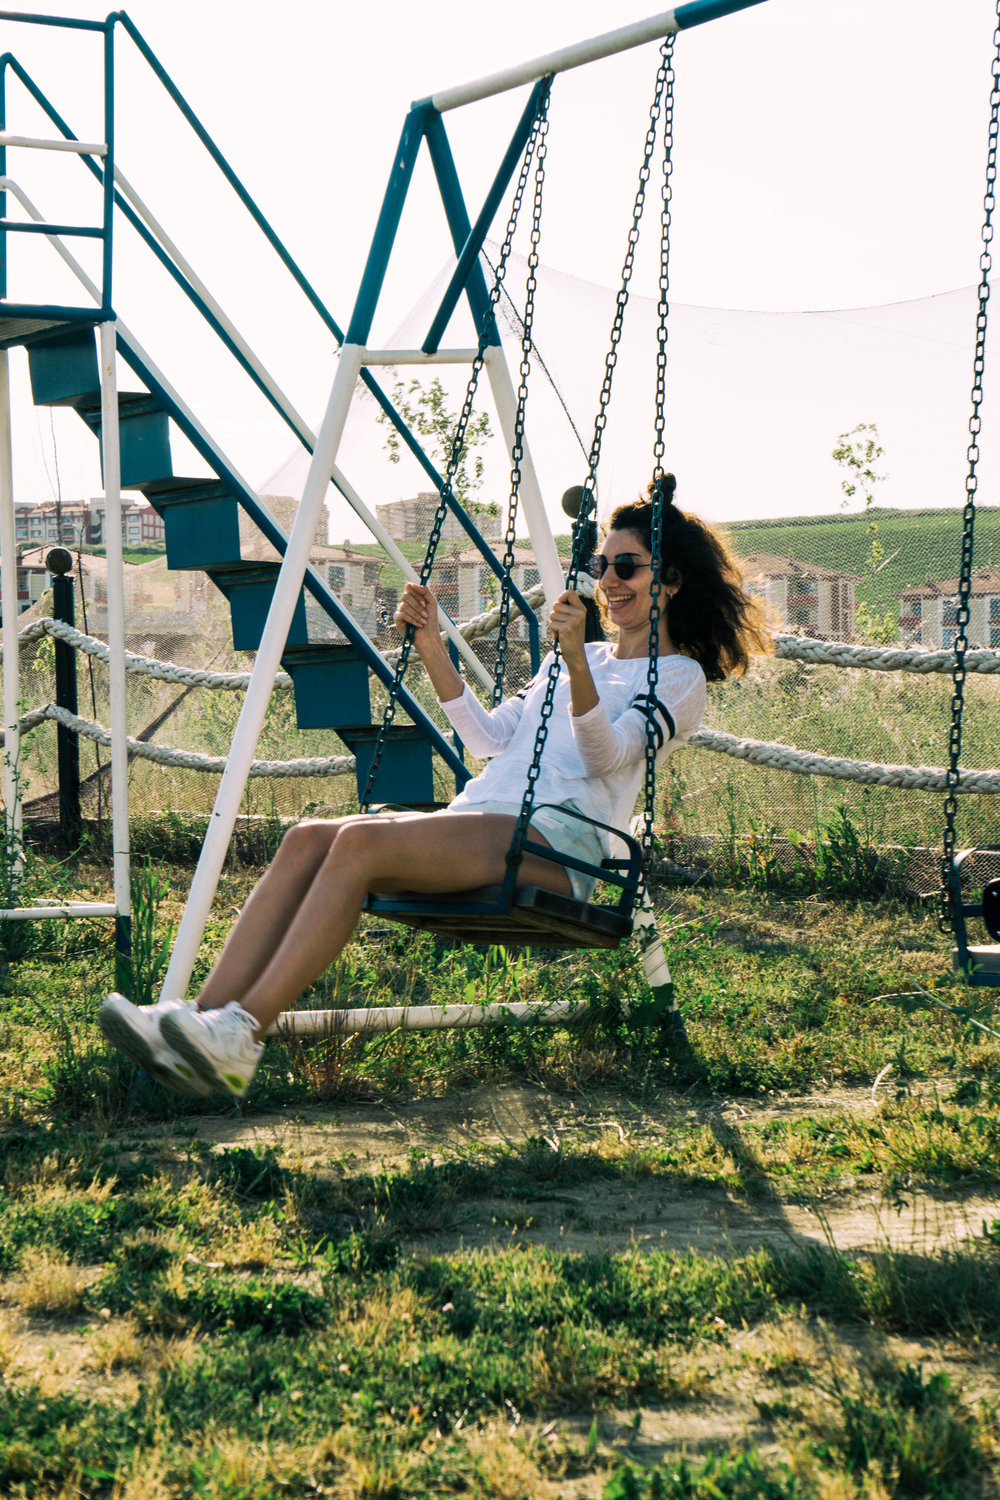 Swing your problems away